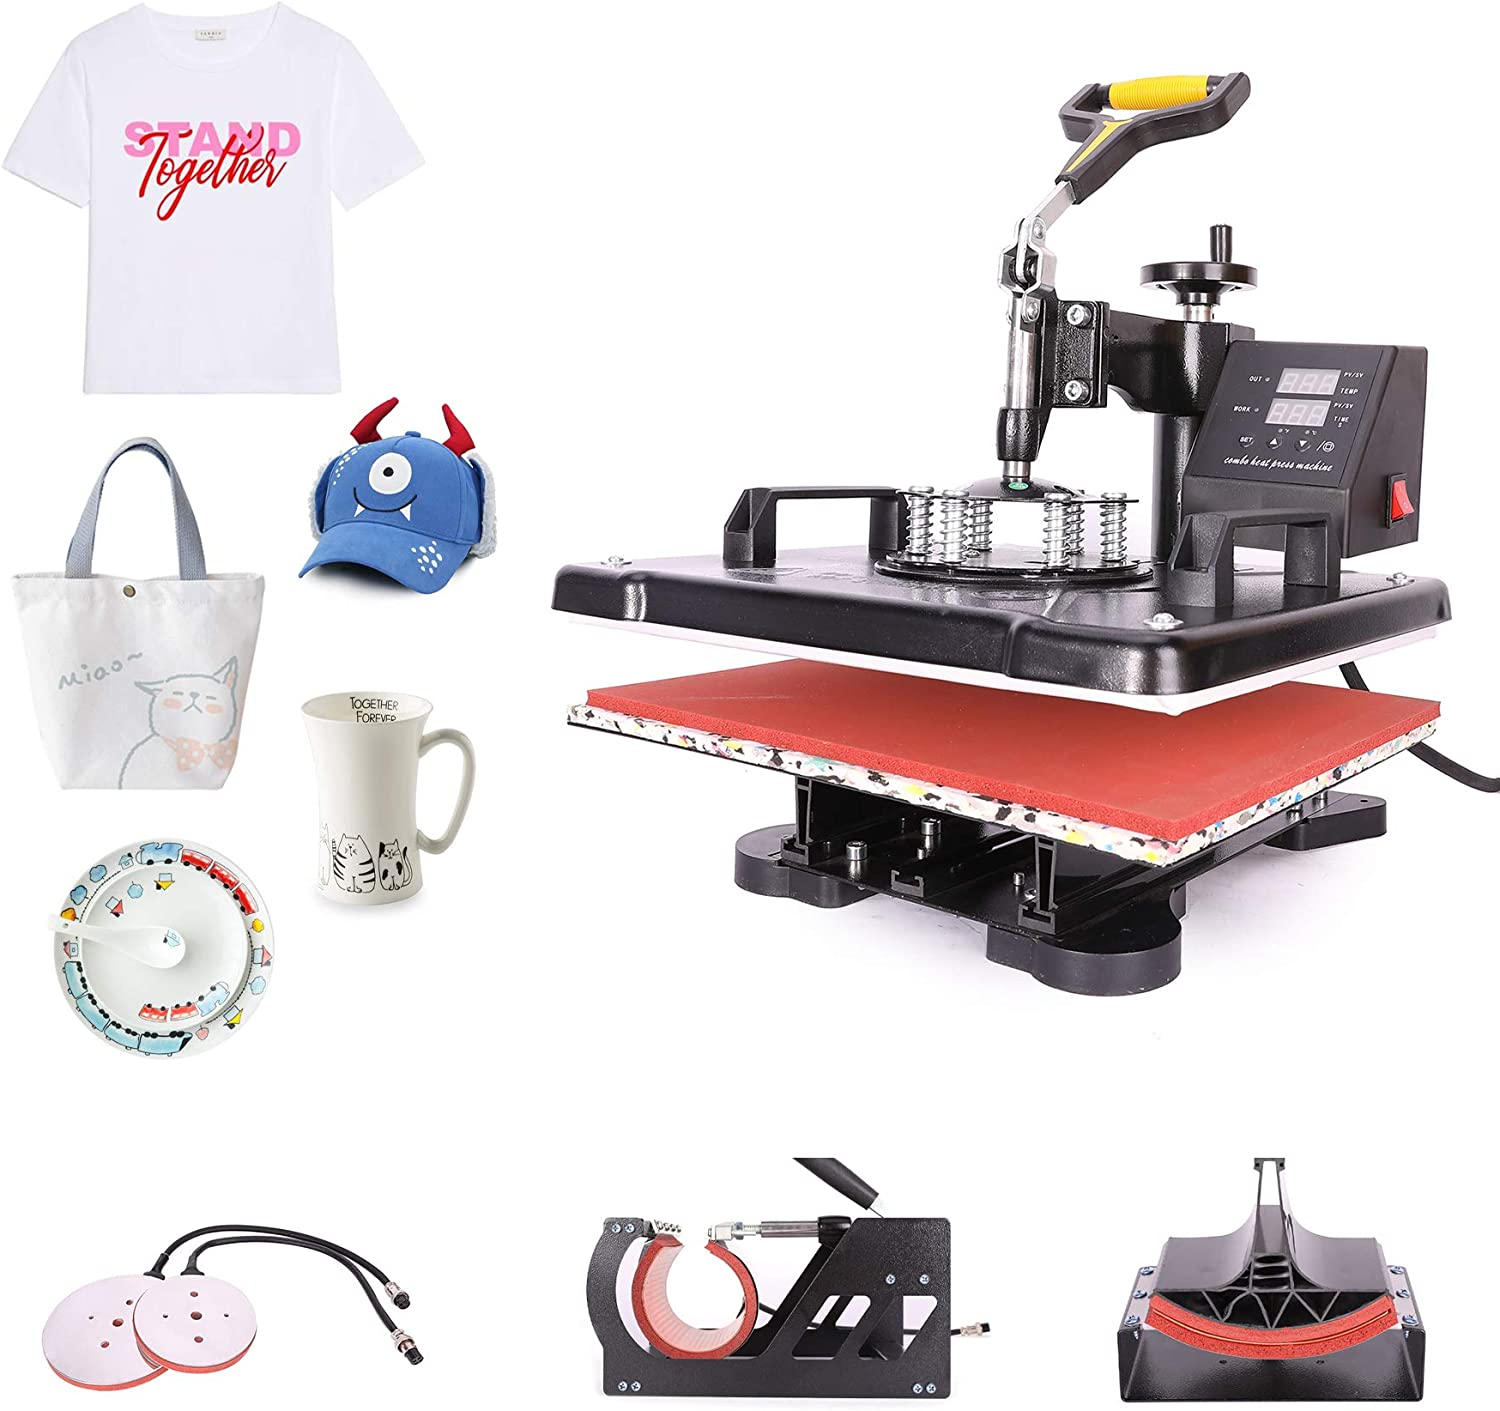 CO-Z 5 in 1 Pro Heat Press Machine 12 x 15 Intelligent Audible Alarm Transfer Sublimation Printer Swing Away Multifunctional for T-Shirt//Hat//Mug//Plate//Cap//Cup